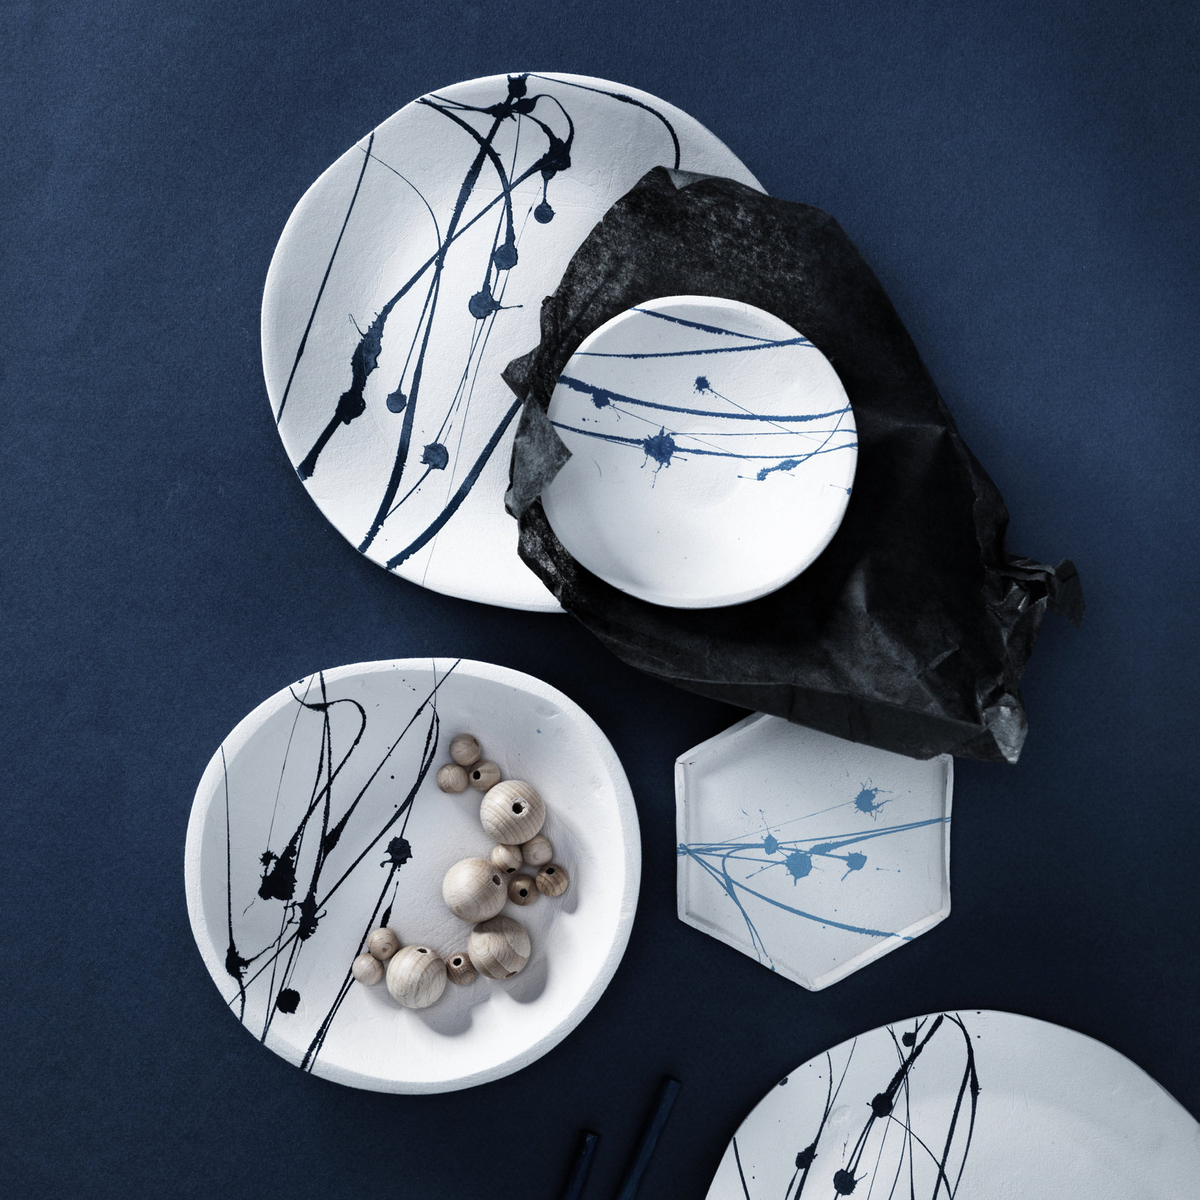 Spattered clay dishes